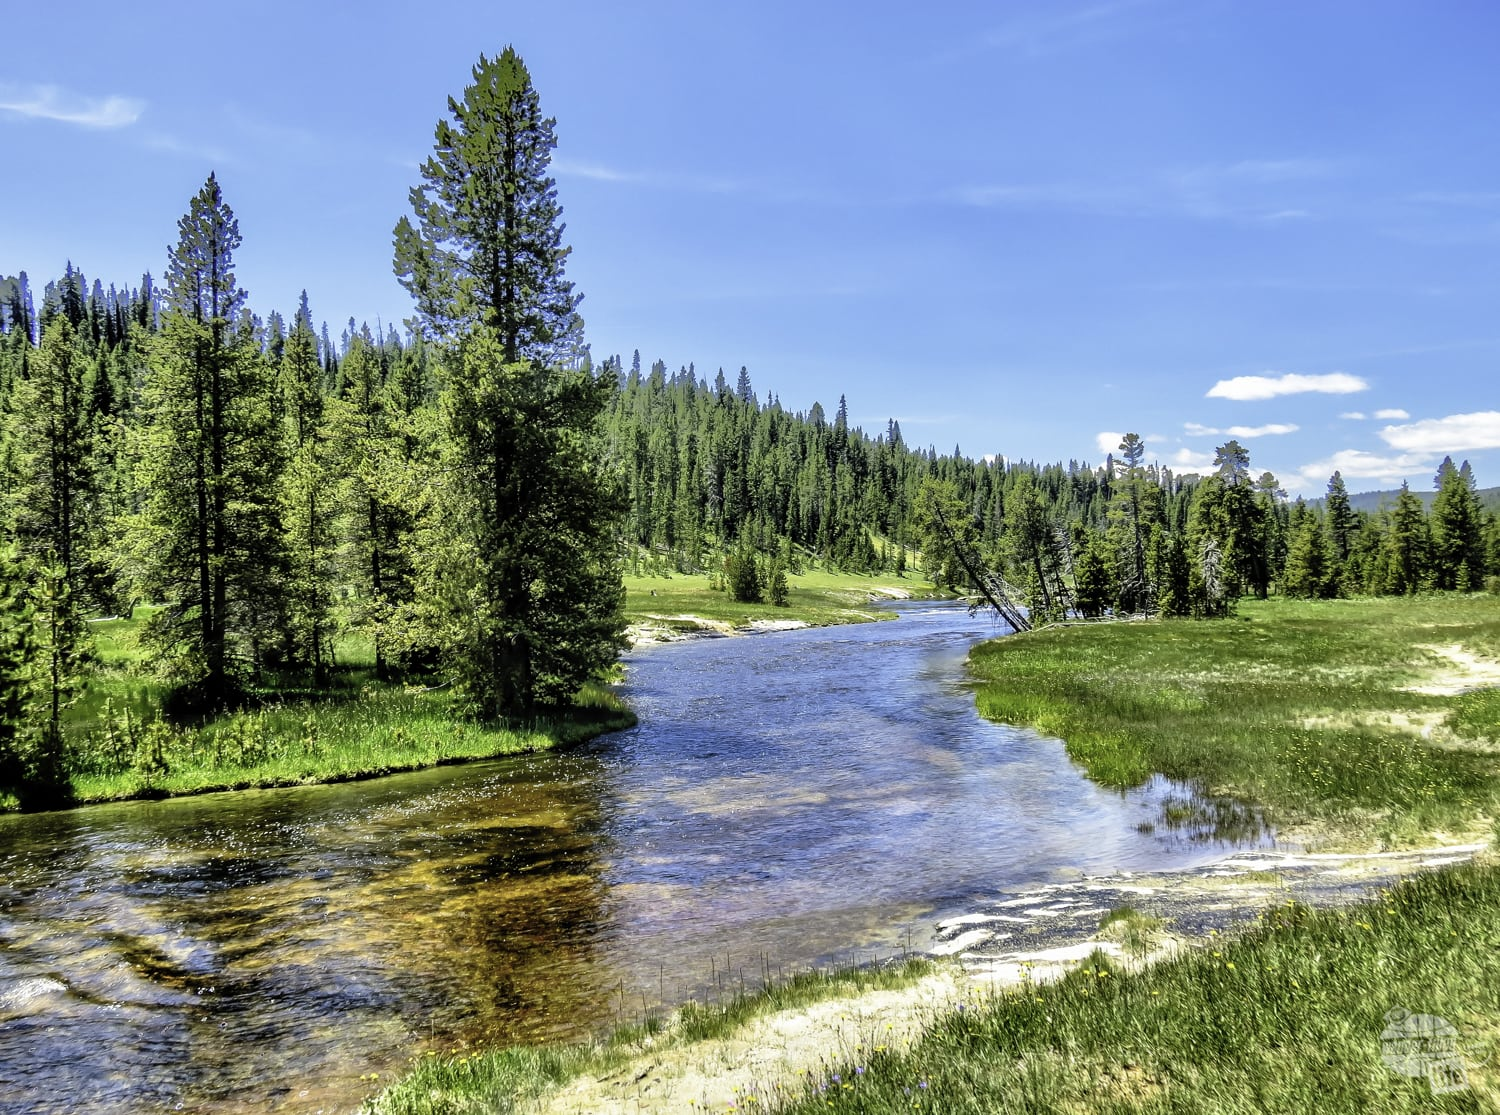 The Firehole River provided a great view on our Yellowstone hike.